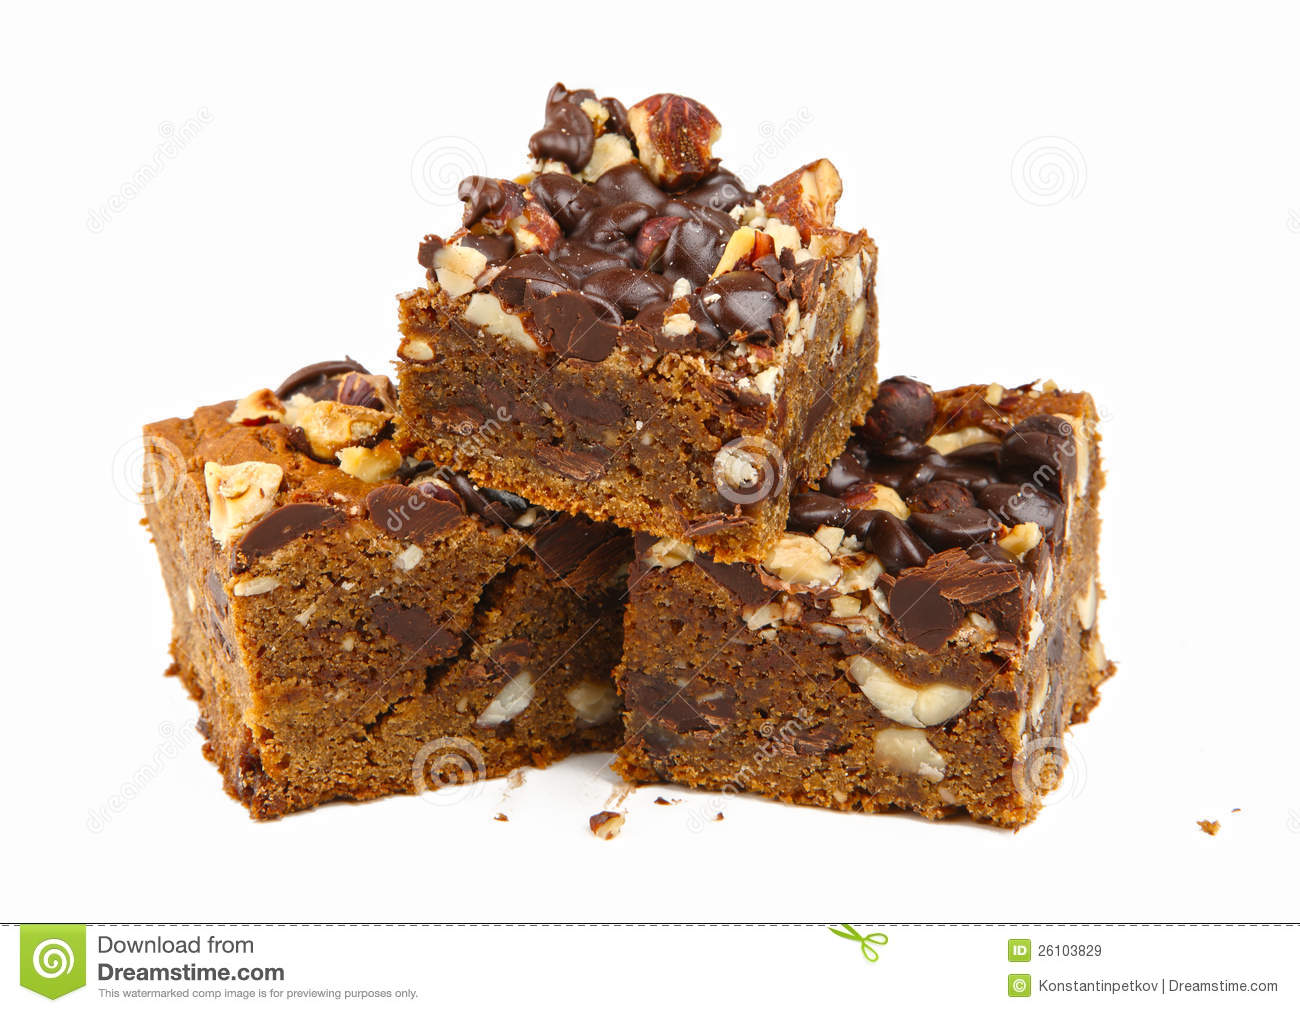 Chocolate Dessert With Walnuts Royalty Free Stock Images - Image ...